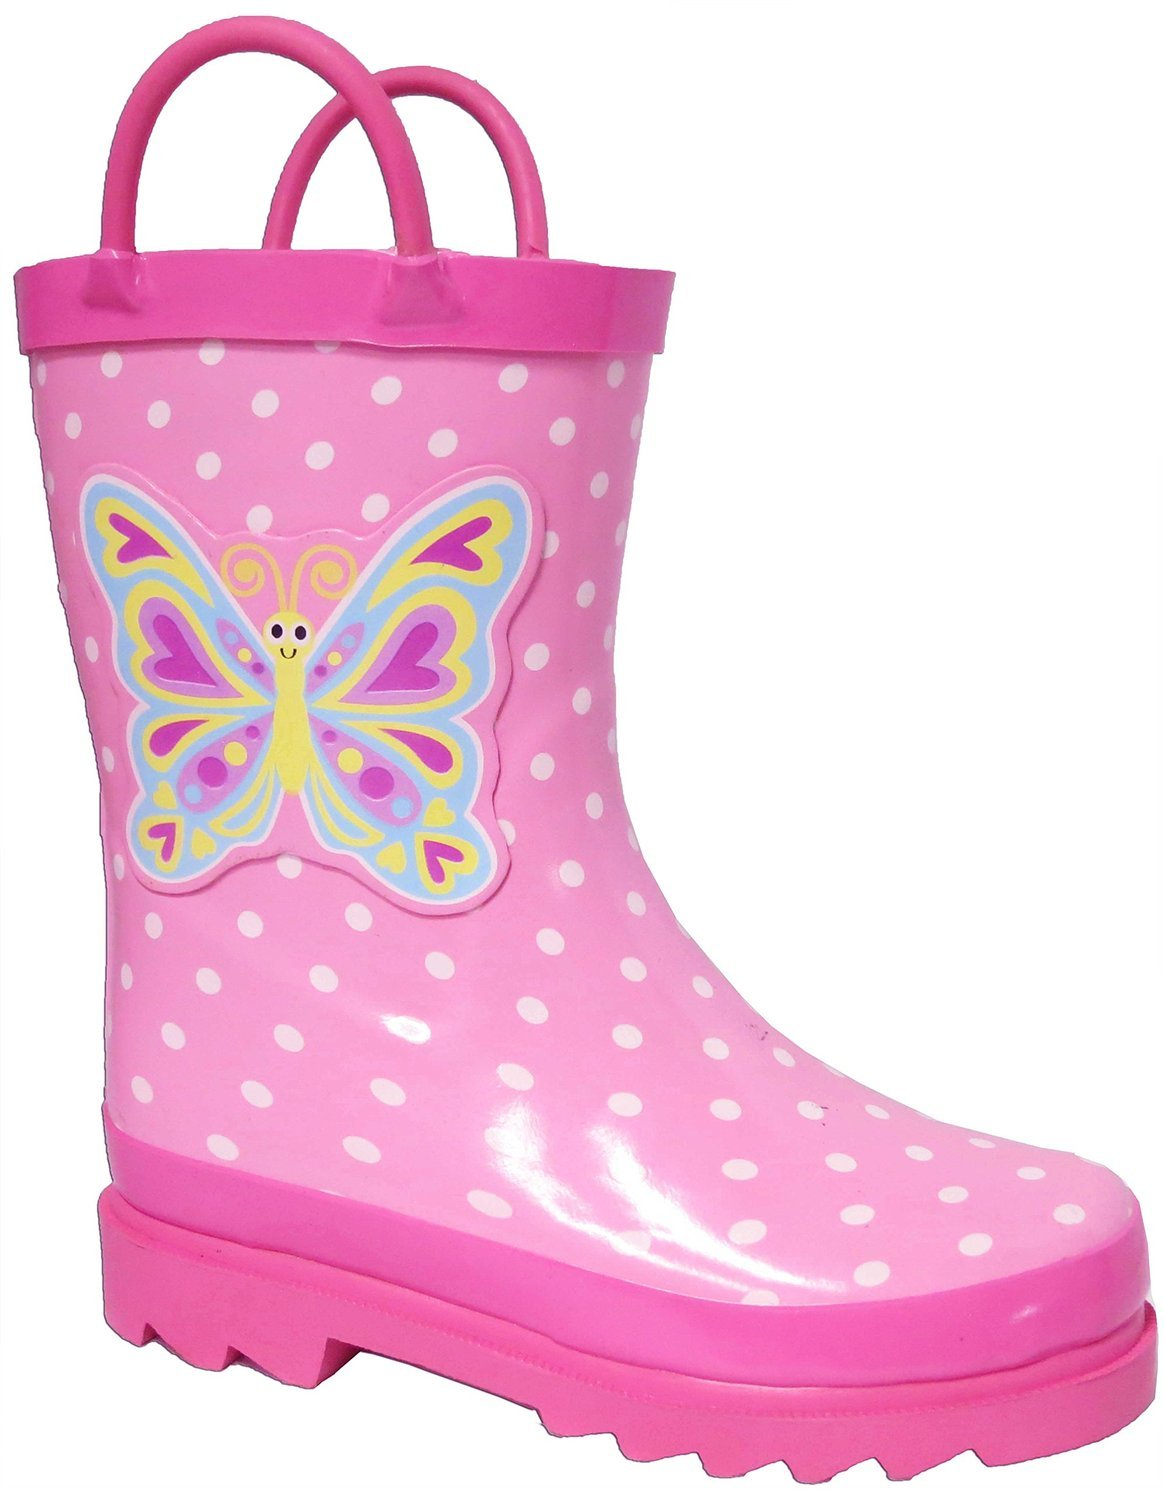 Girls Pink Butterfly Polka-Dot Rain Boots - Size 8 (Toddler)